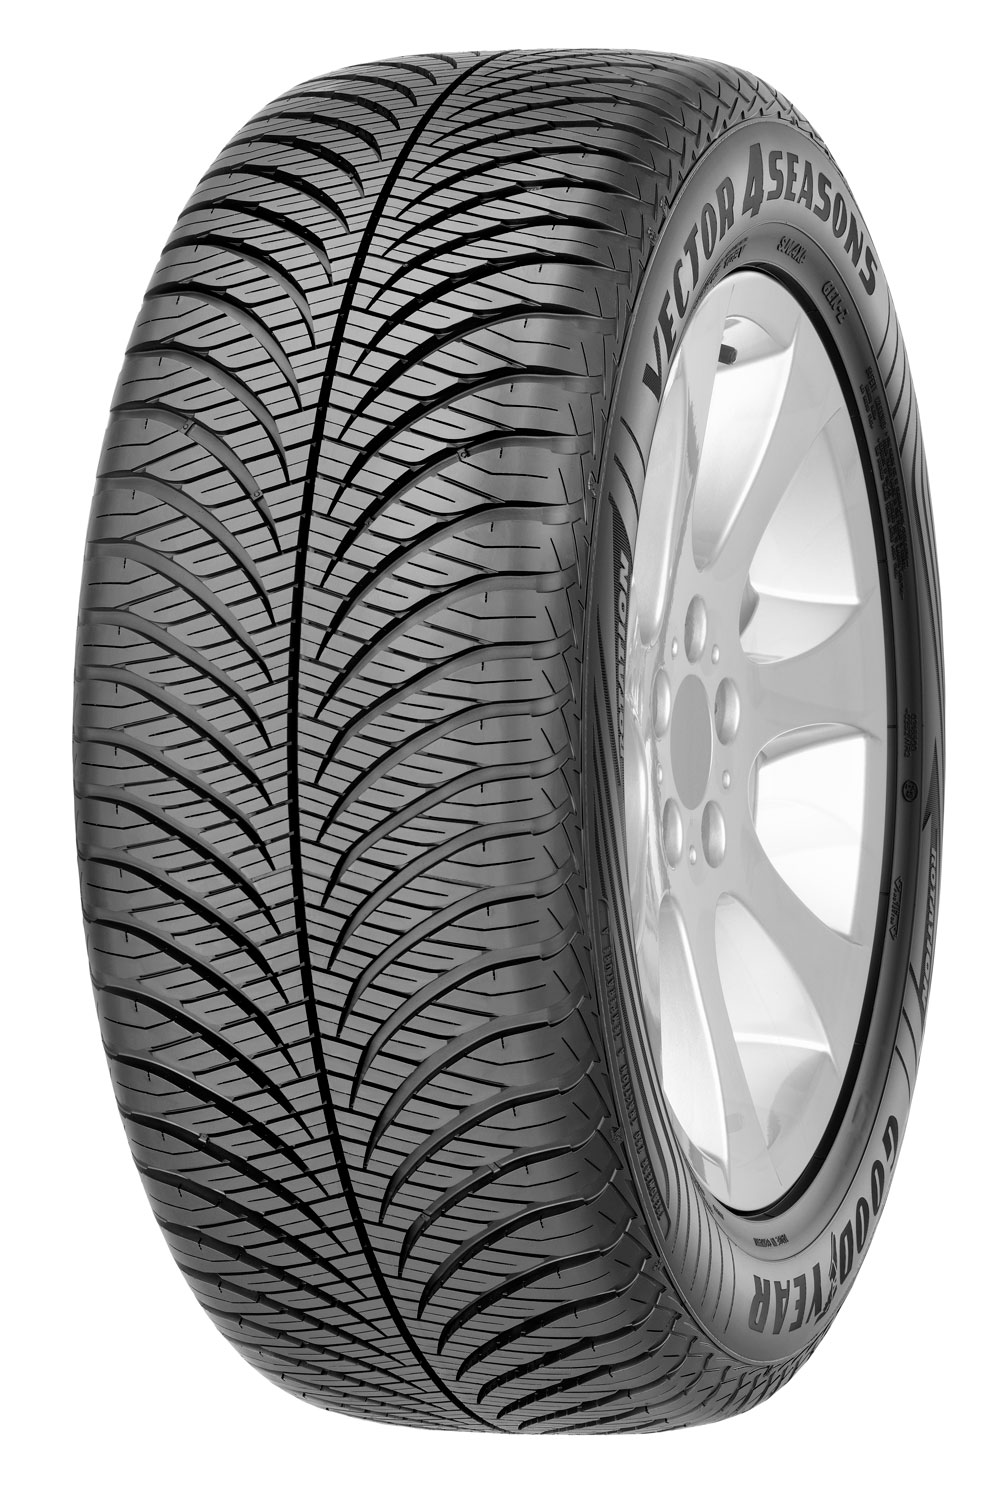 225/45 R17 VECTOR-4SEASON 94V XL M&S